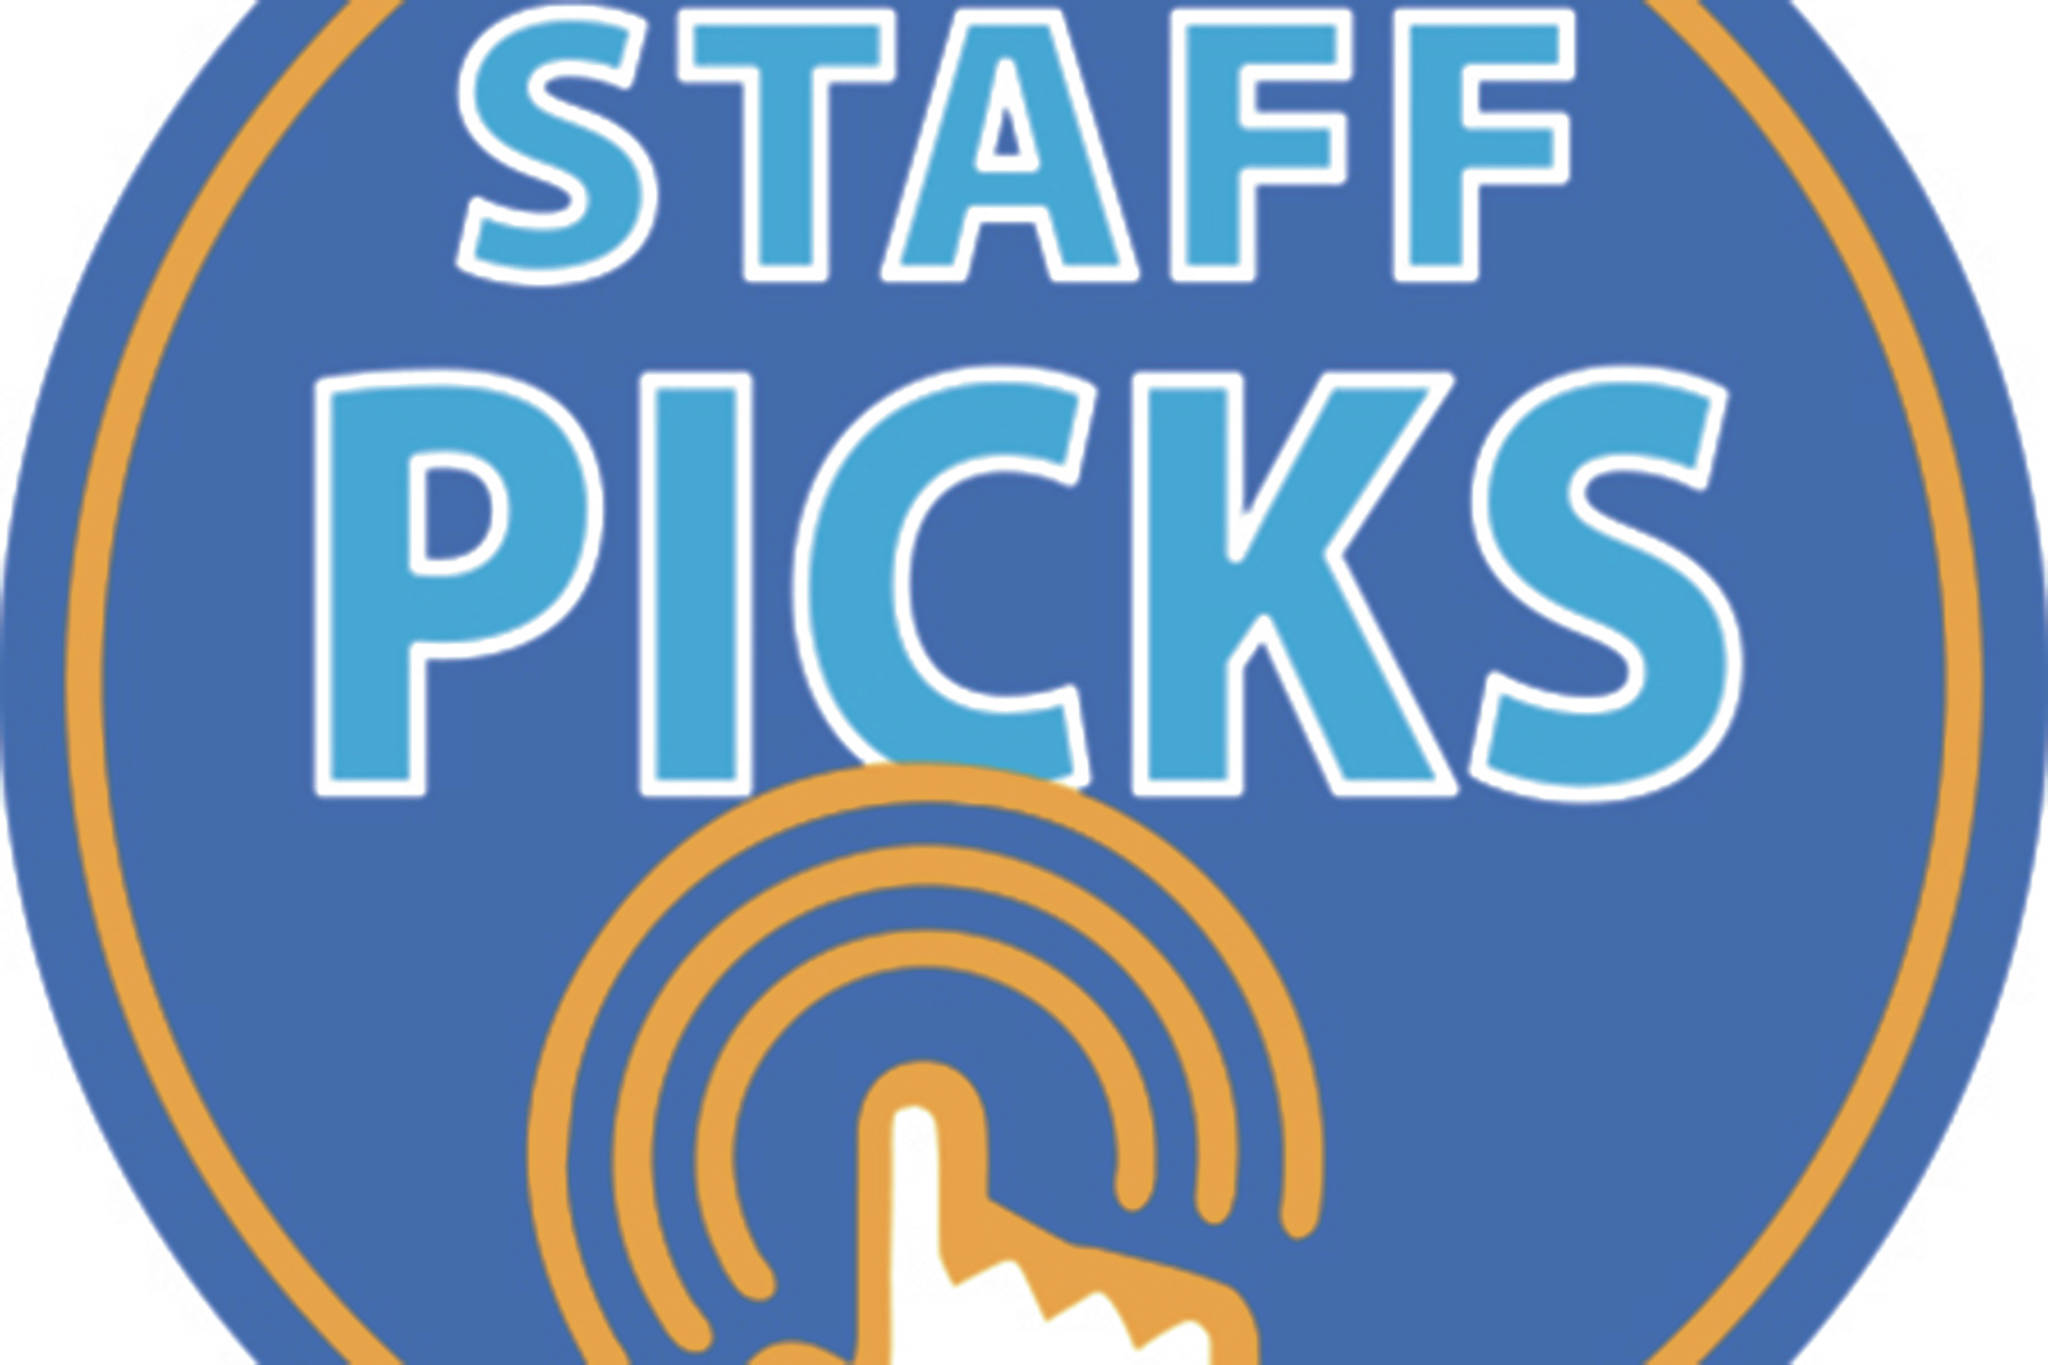 Staff Picks: Check out what we're reading, watching, playing and listening to this month